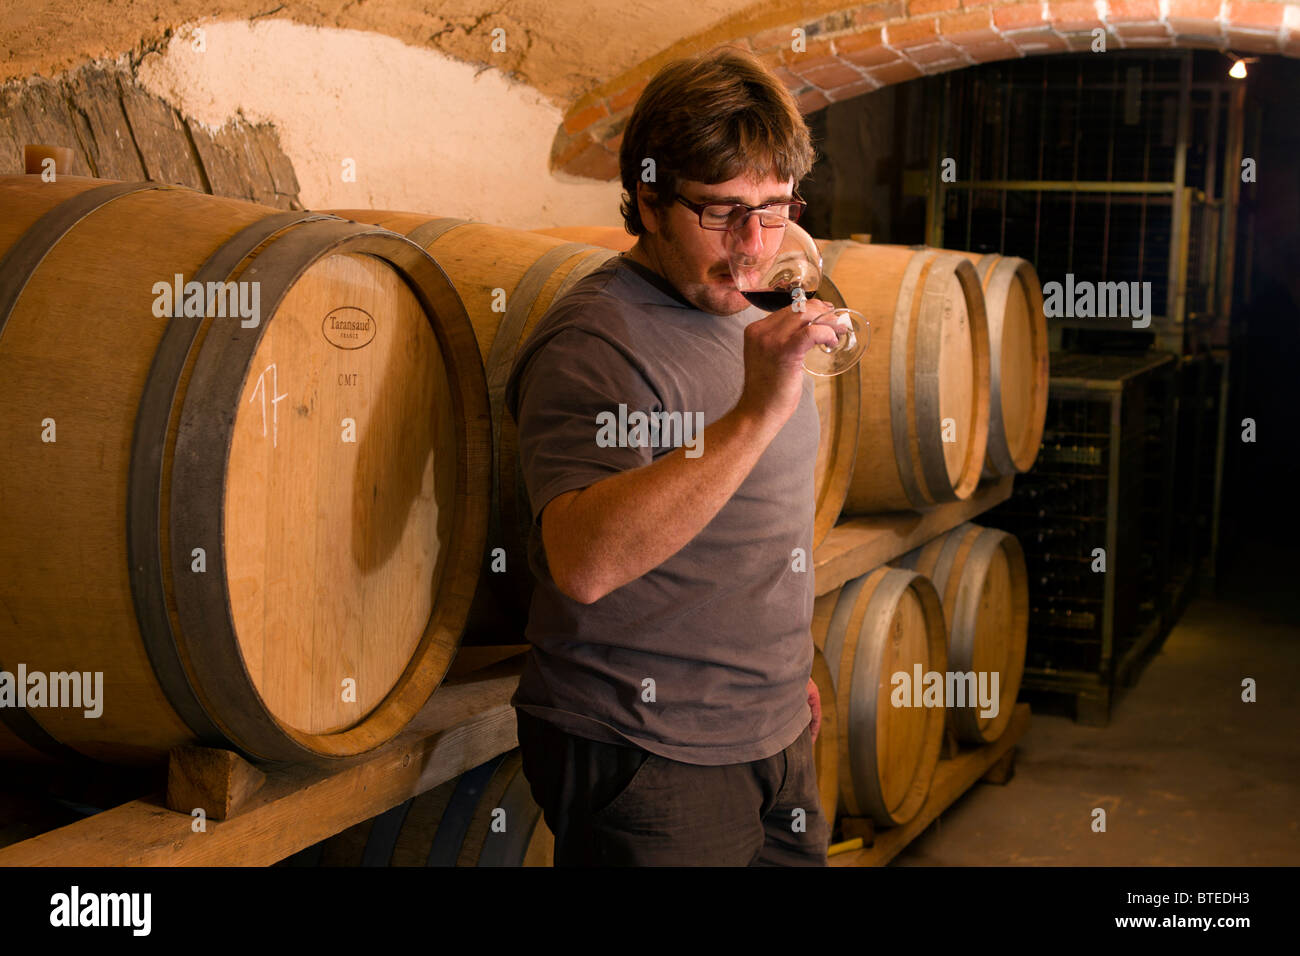 winemaking stockfotos winemaking bilder alamy. Black Bedroom Furniture Sets. Home Design Ideas